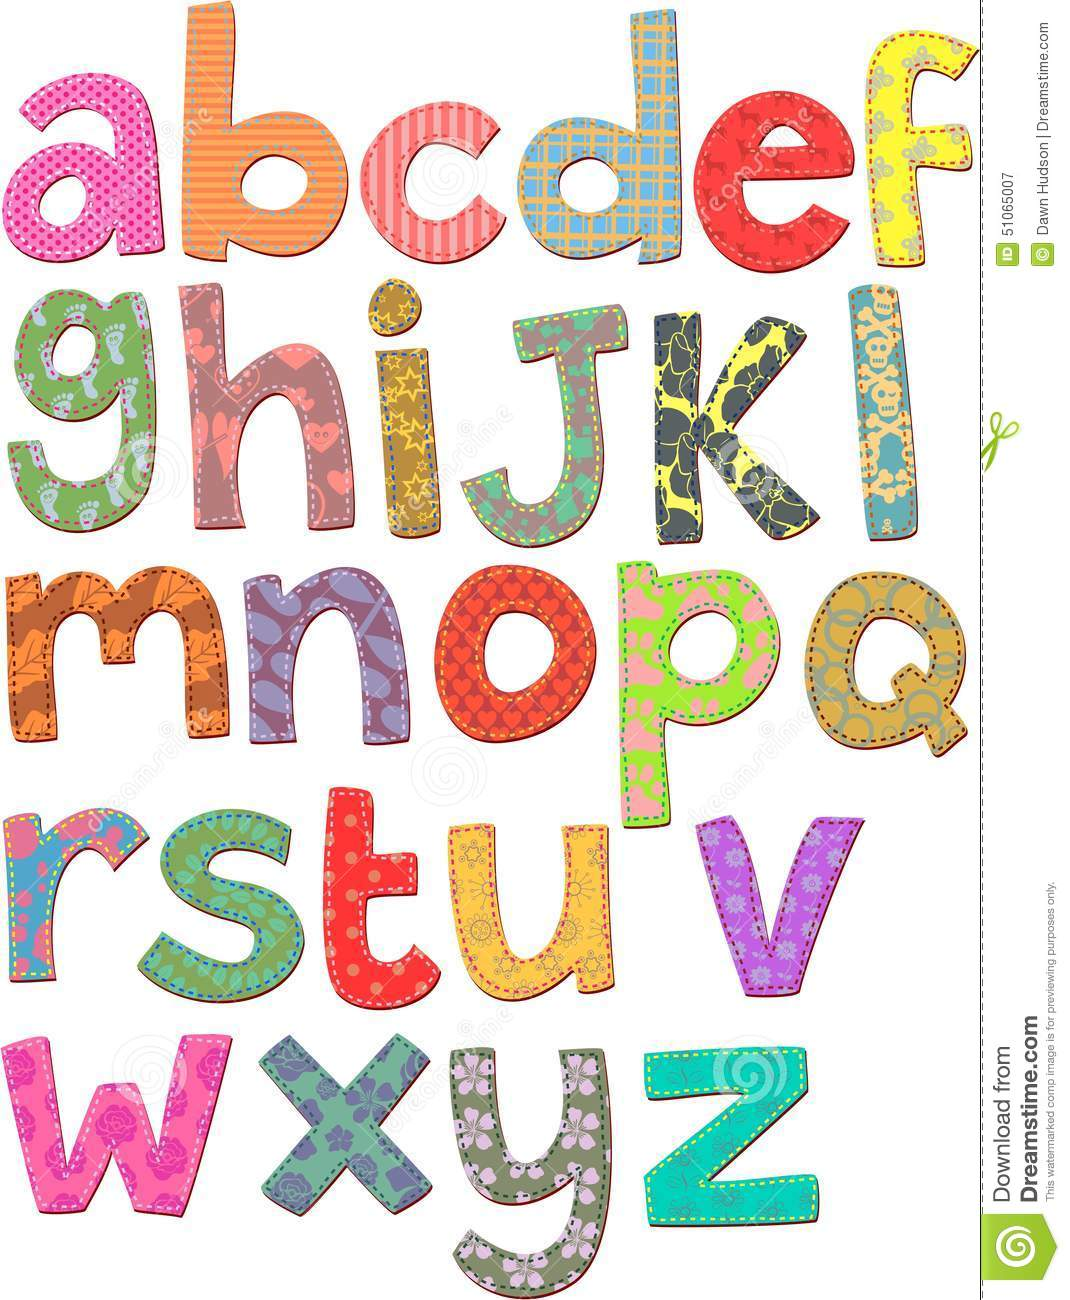 alphabet clip art stock illustration illustration of craft 51065007 rh dreamstime com clipart alphabets free clipart alphabets free